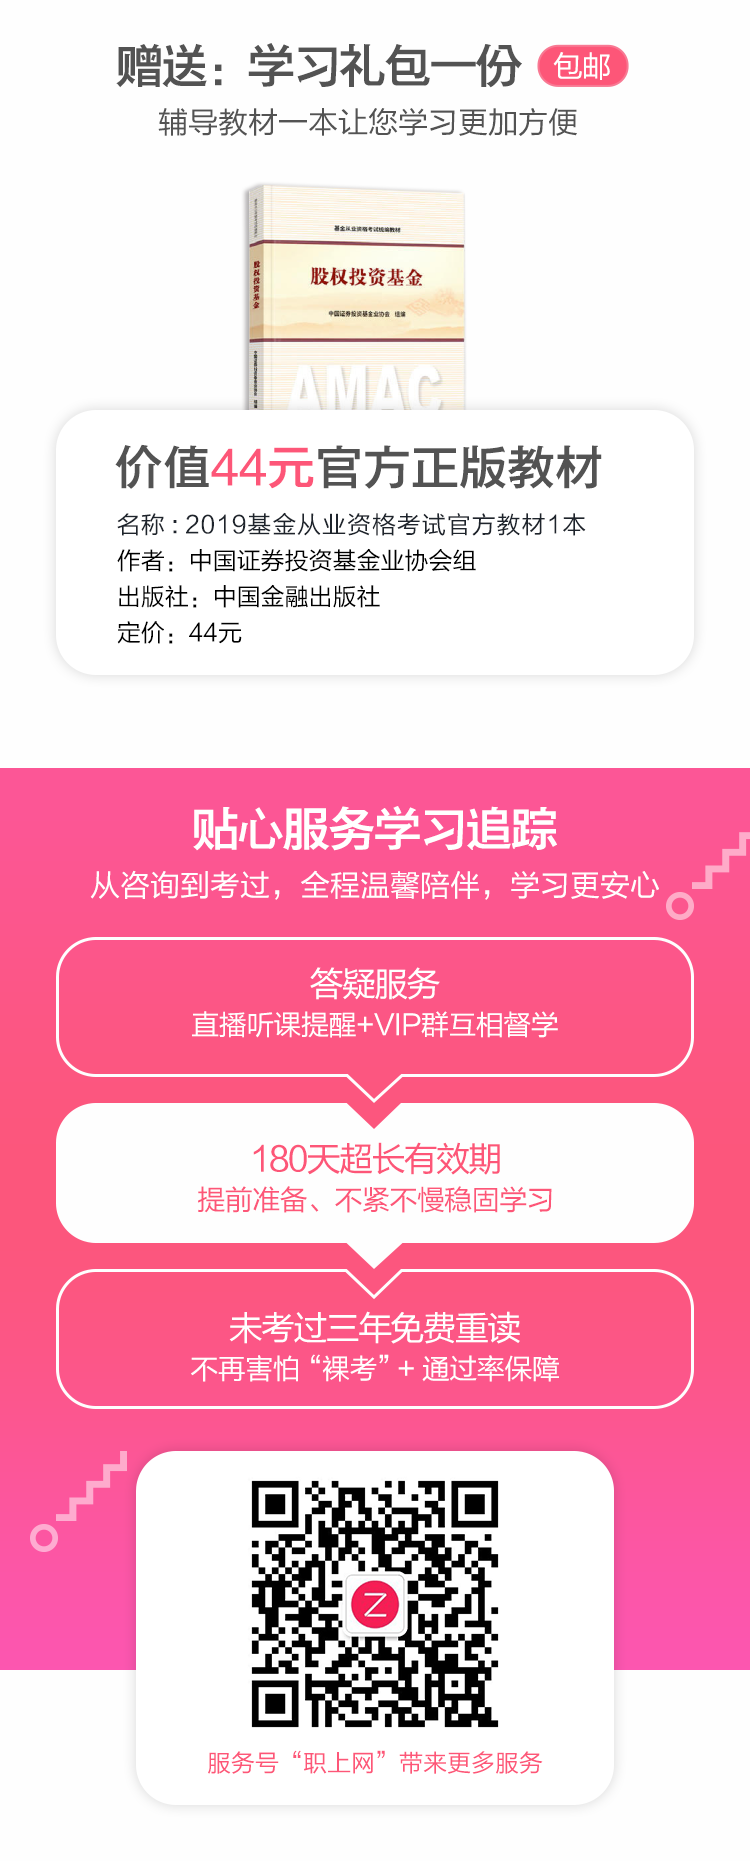 https://img3.zhiupimg.cn/group1/M00/03/7A/rBAUDFwGWR-AWMAvAAMcS3NCssk704.png